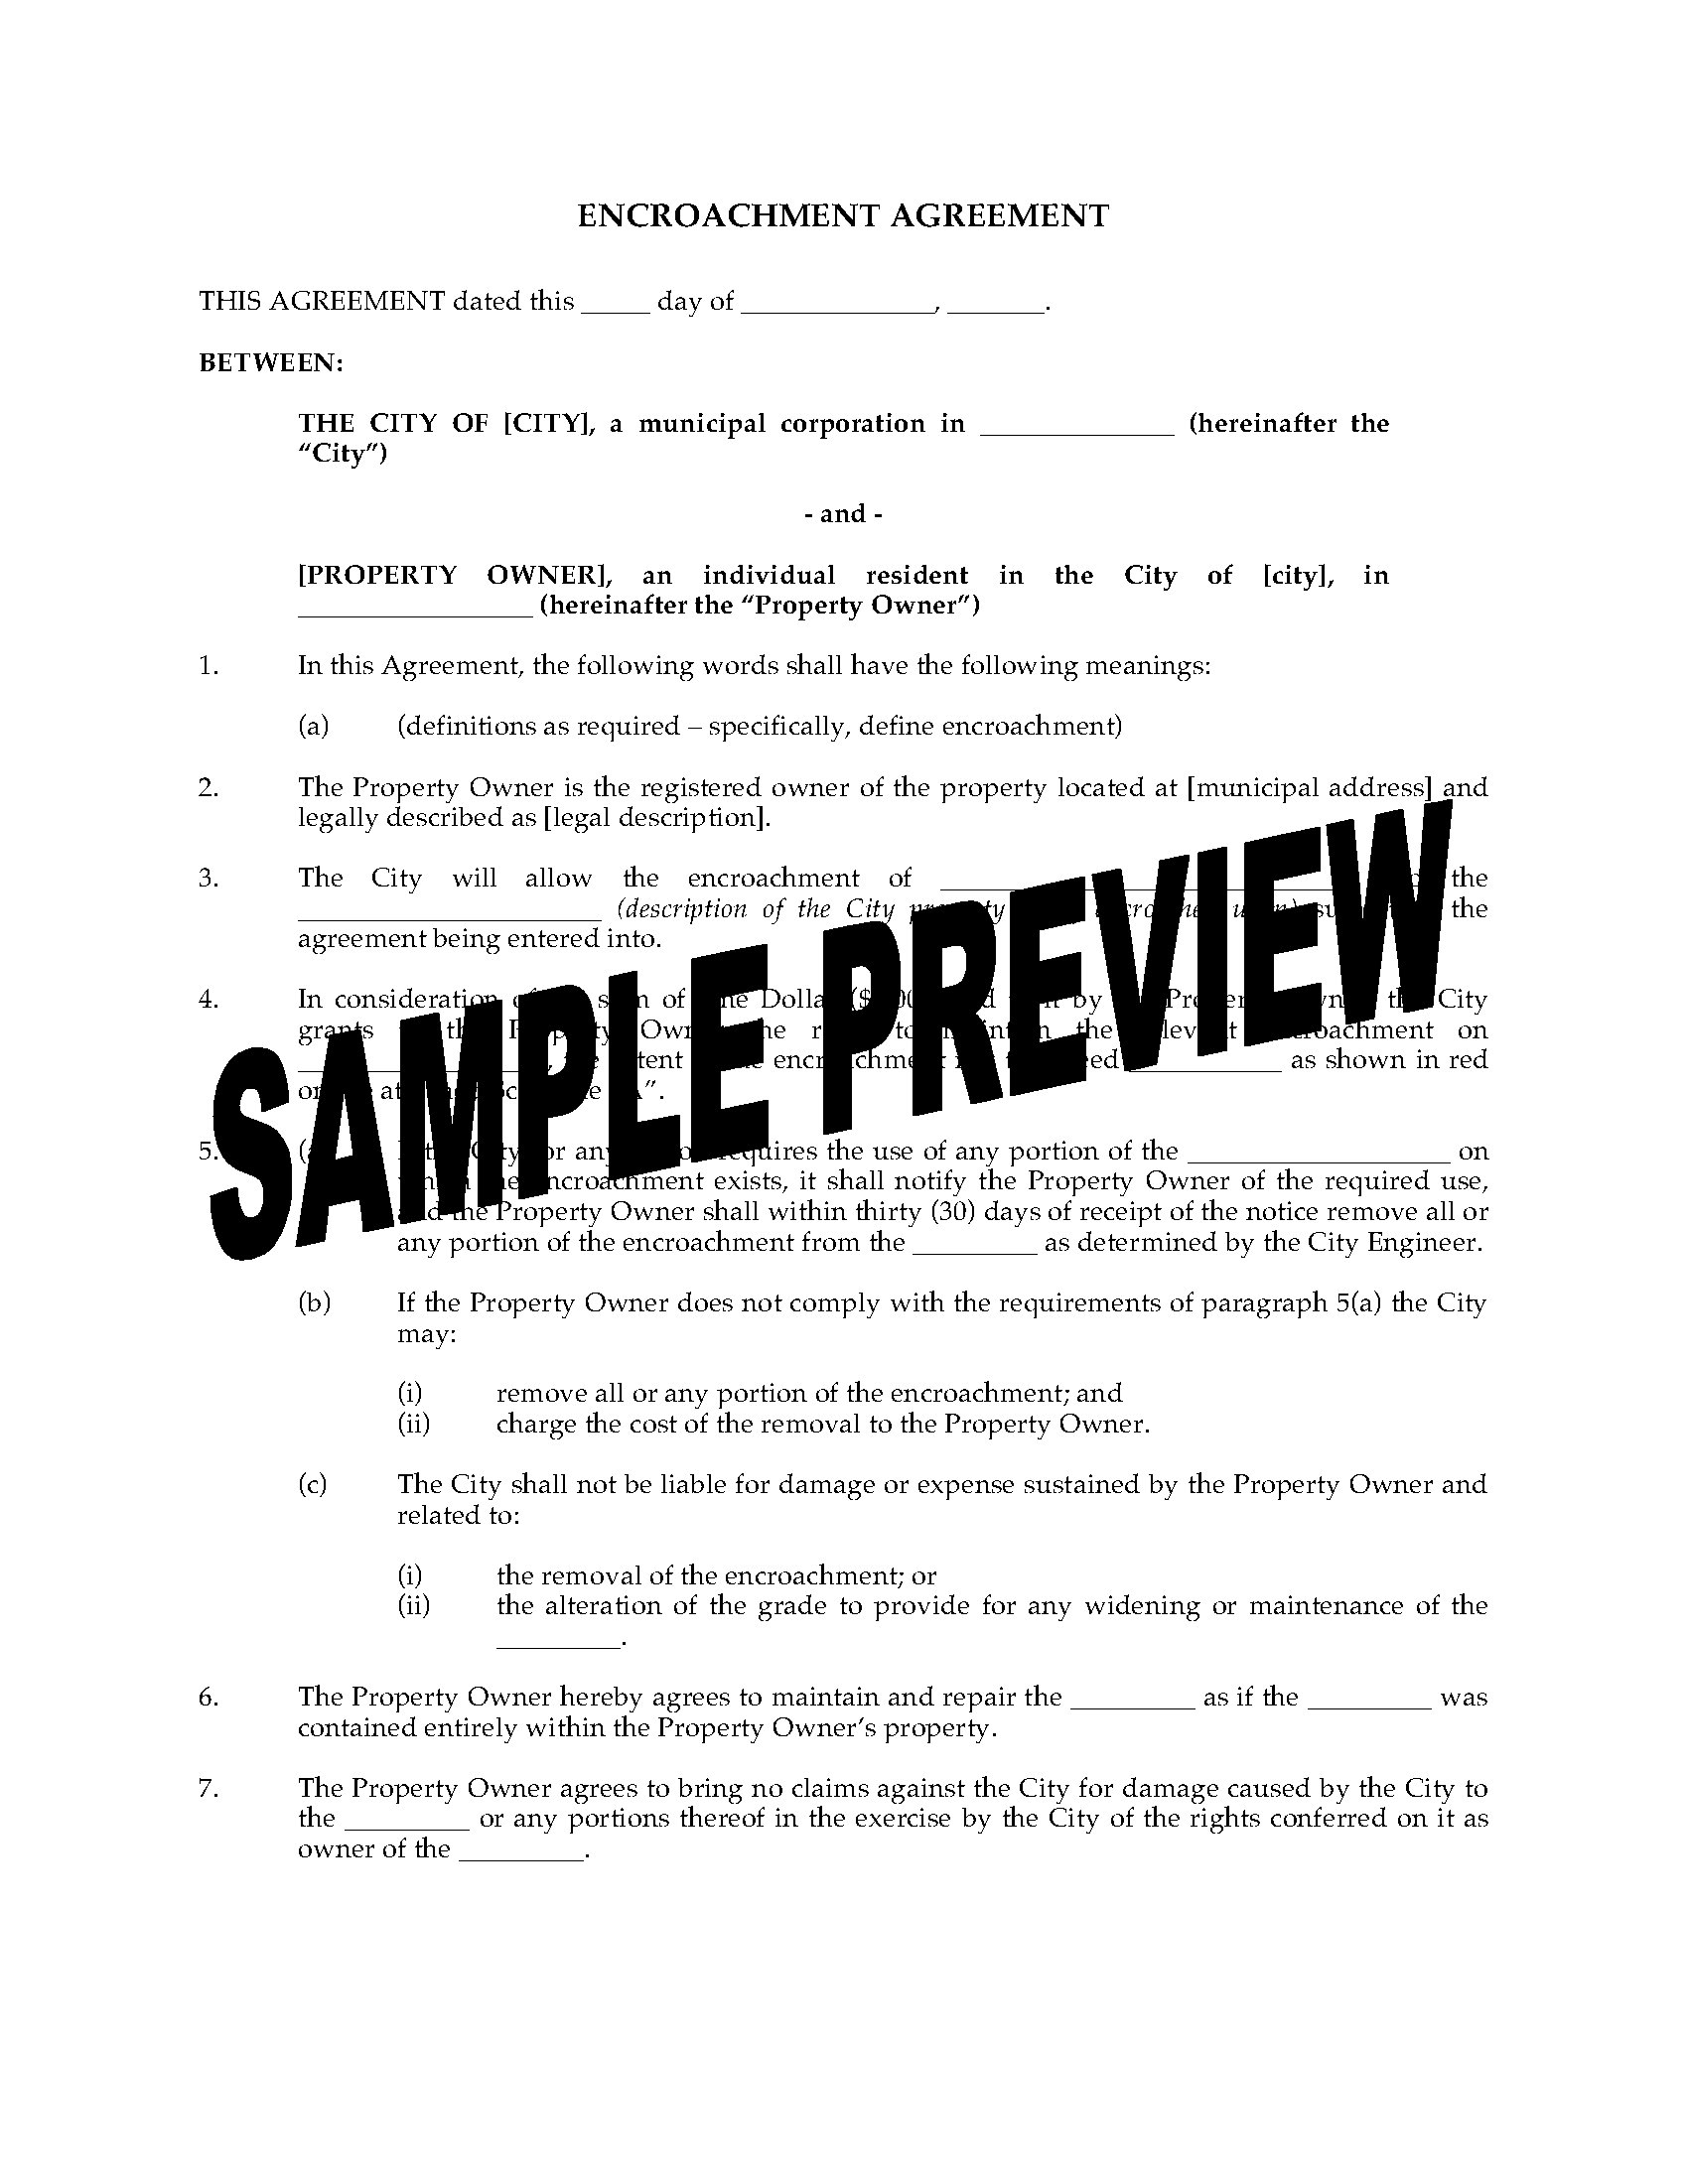 Encroachment Agreement For City Property Legal Forms And Business